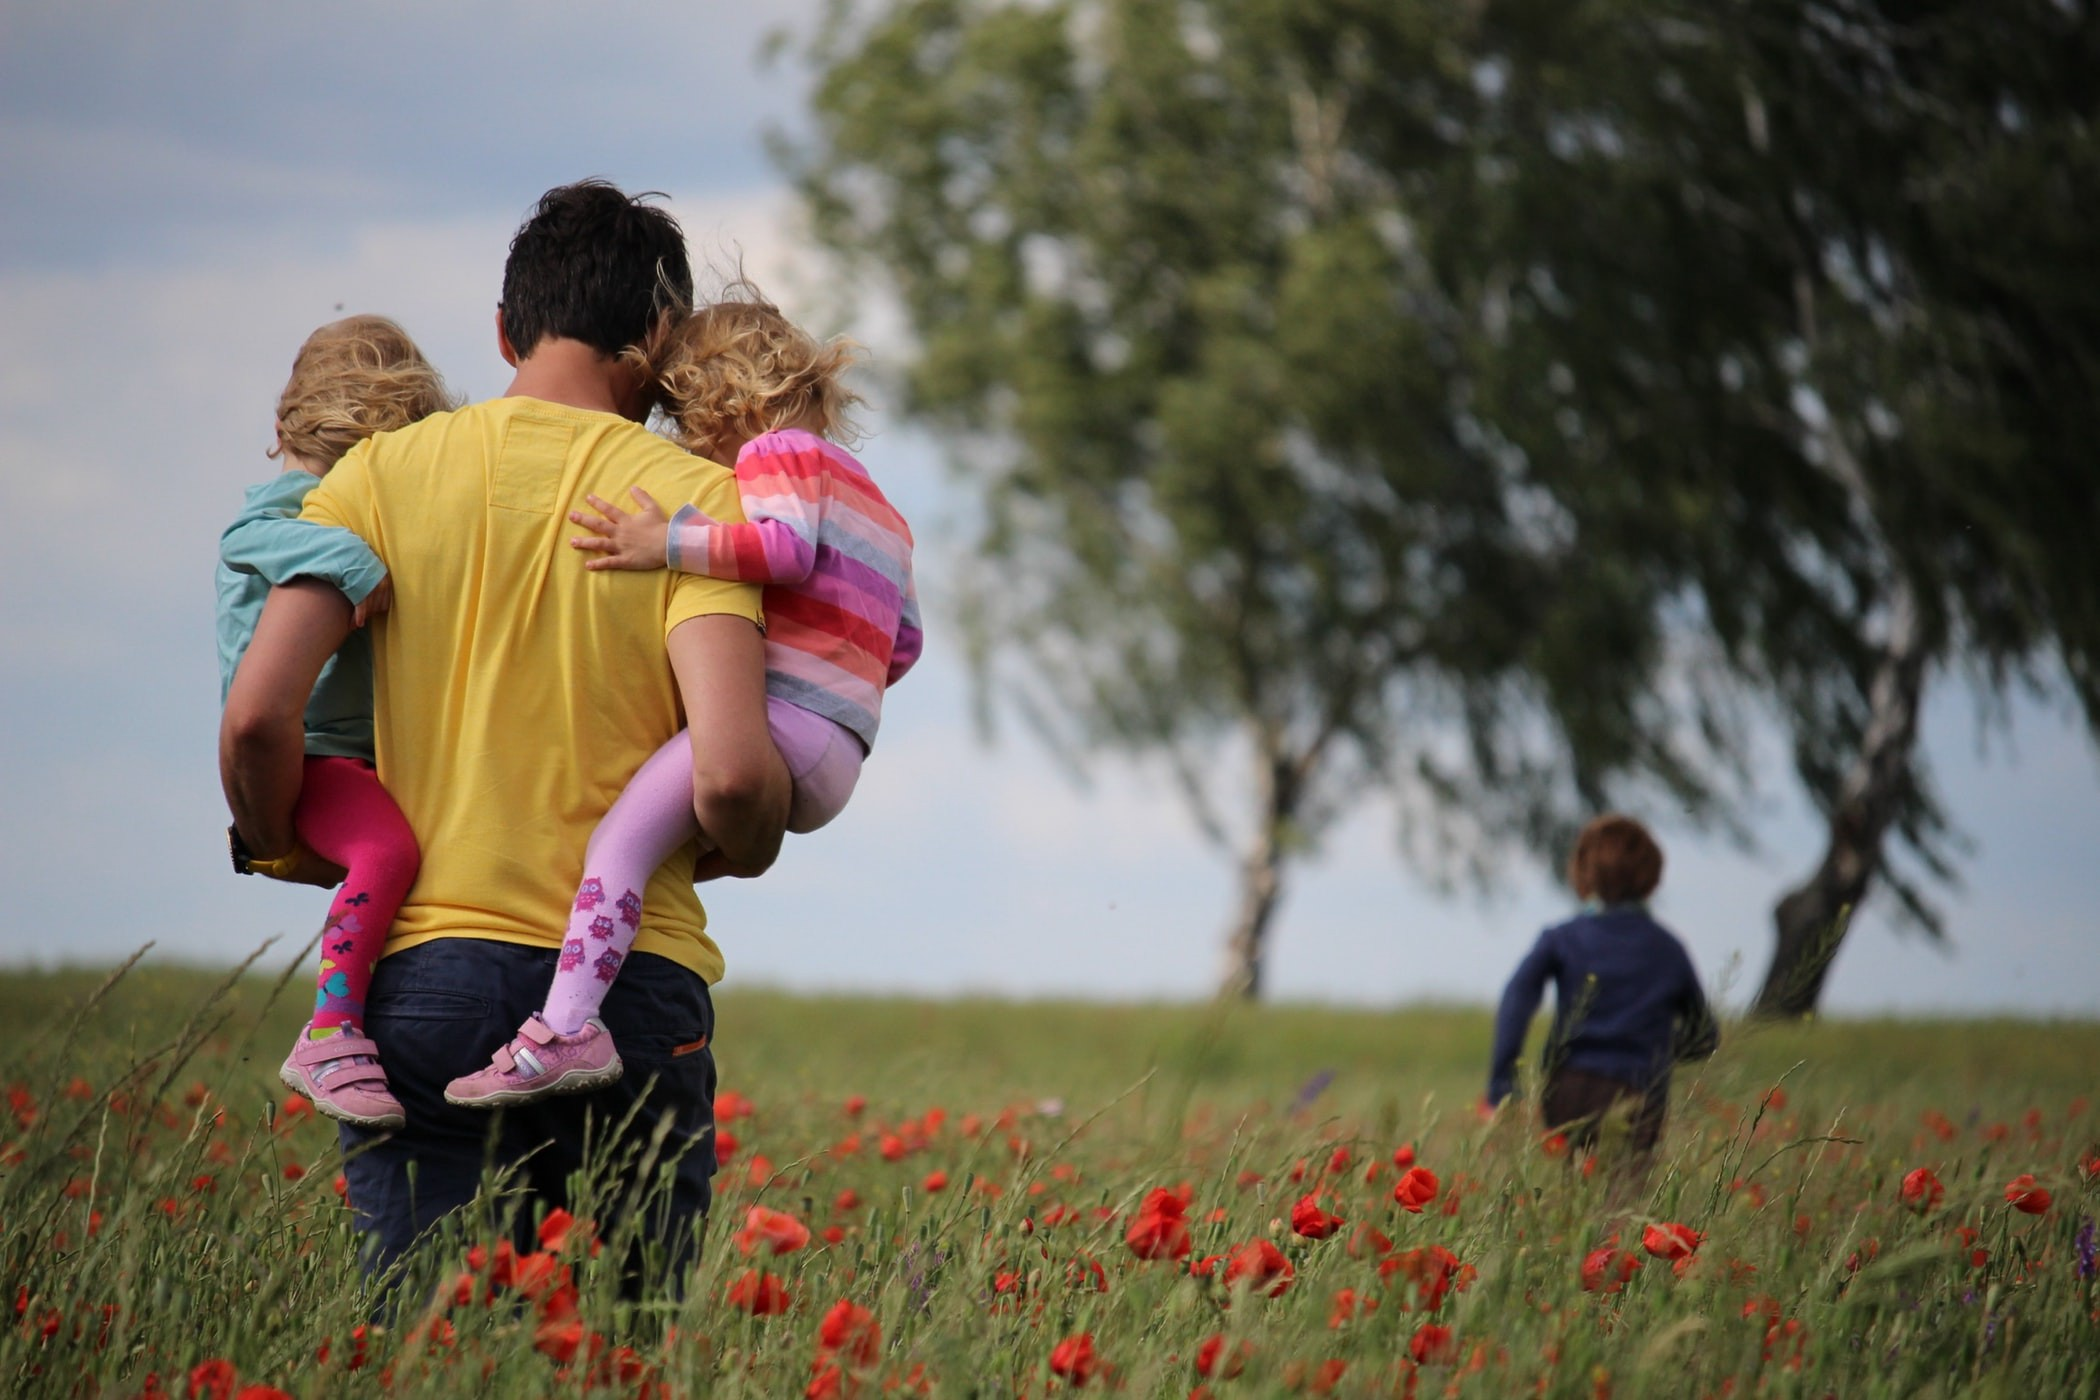 A father carrying two daughters while his son runs through a field of flowers.